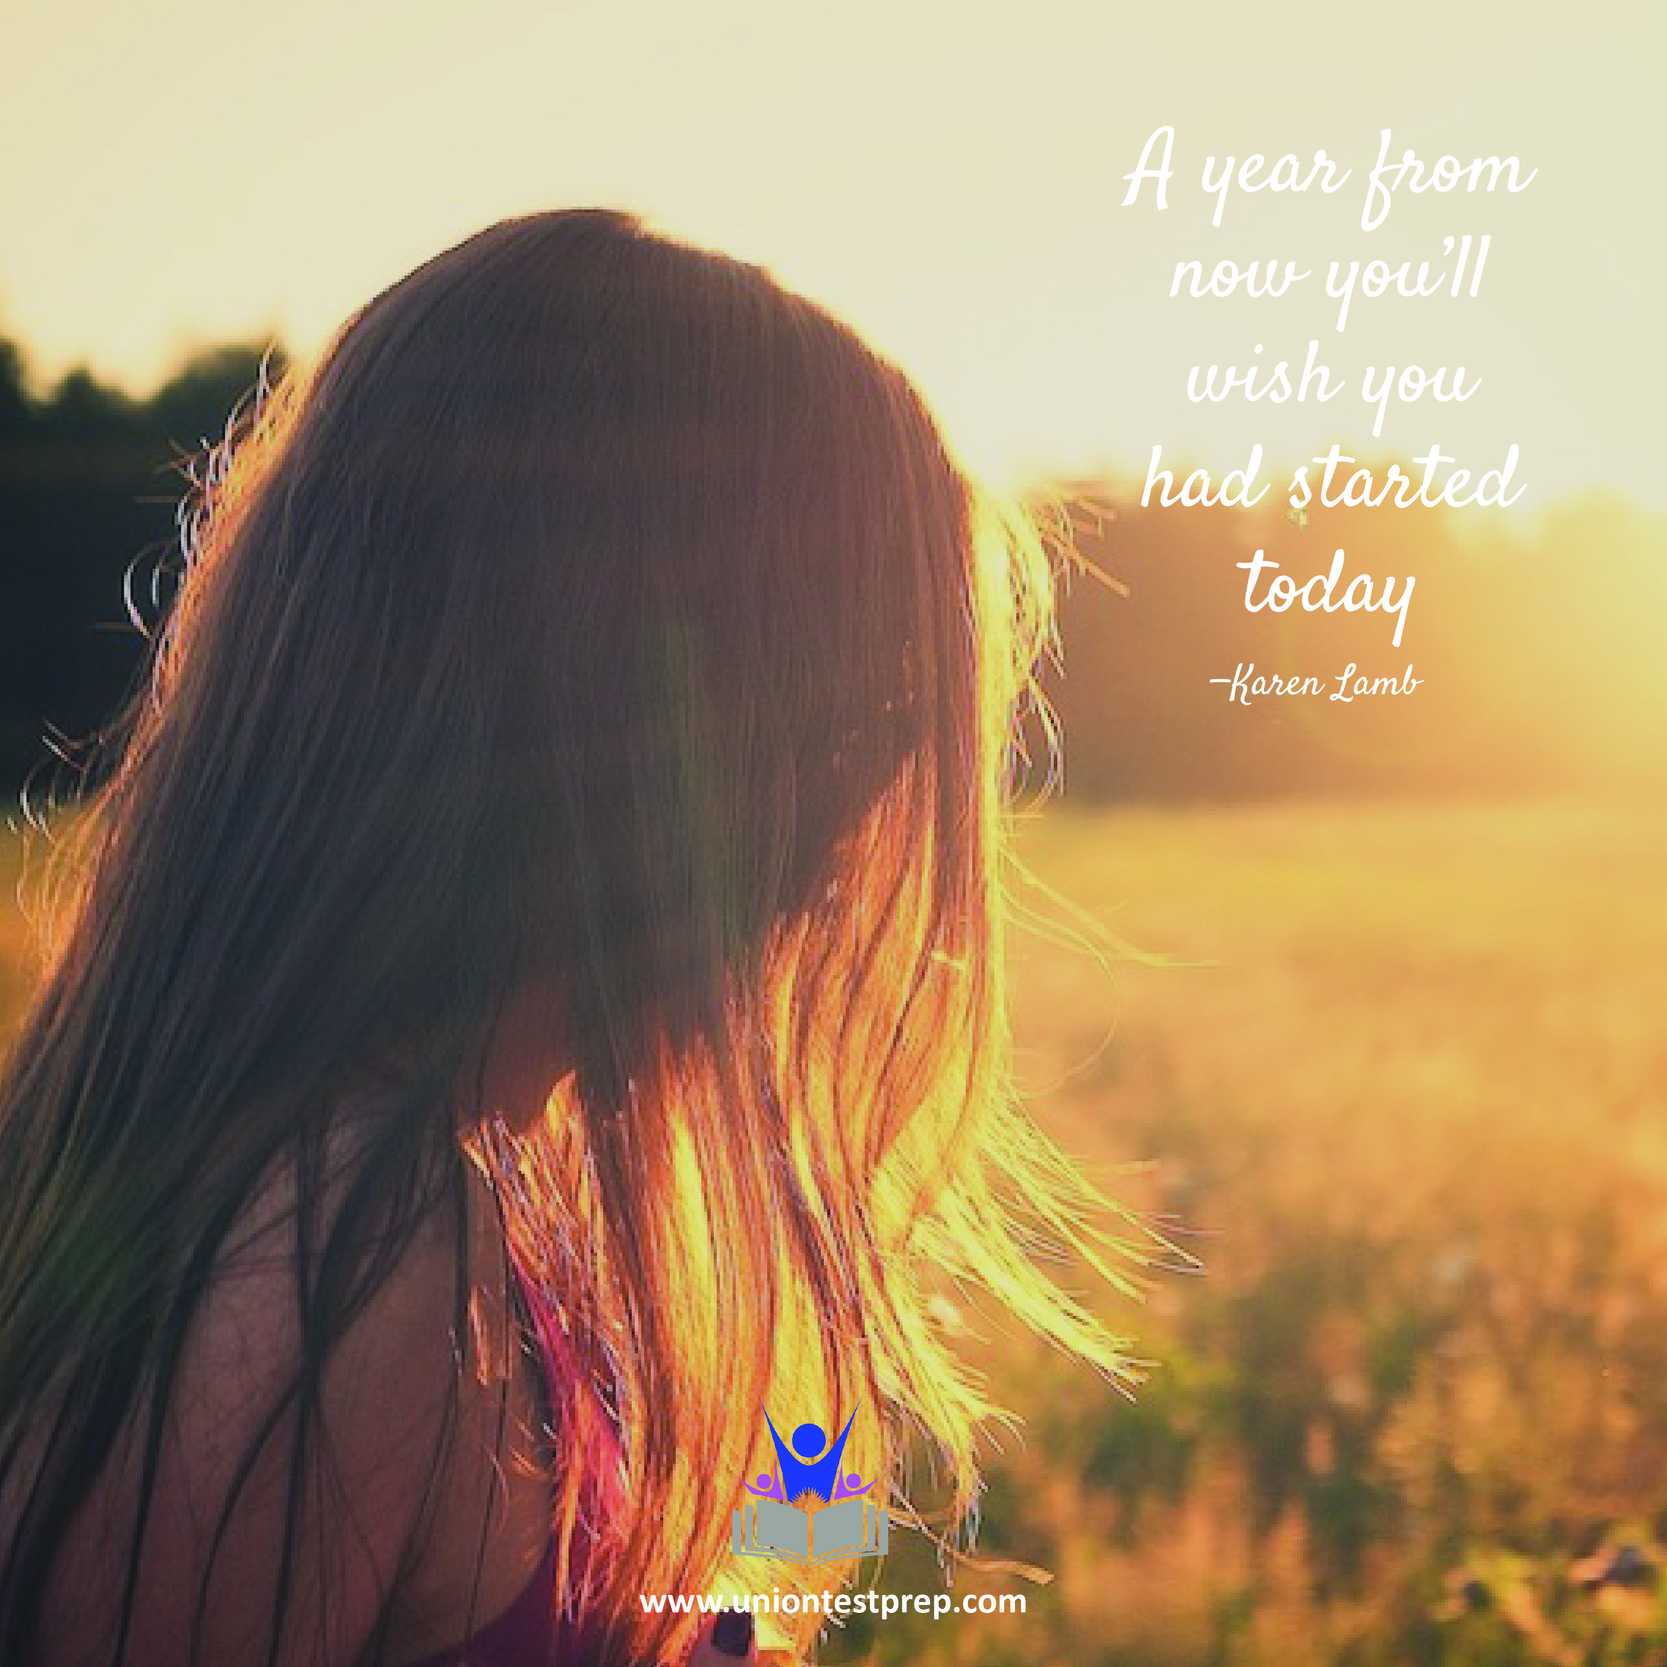 a year from now you'll wish you had started today karen lamb